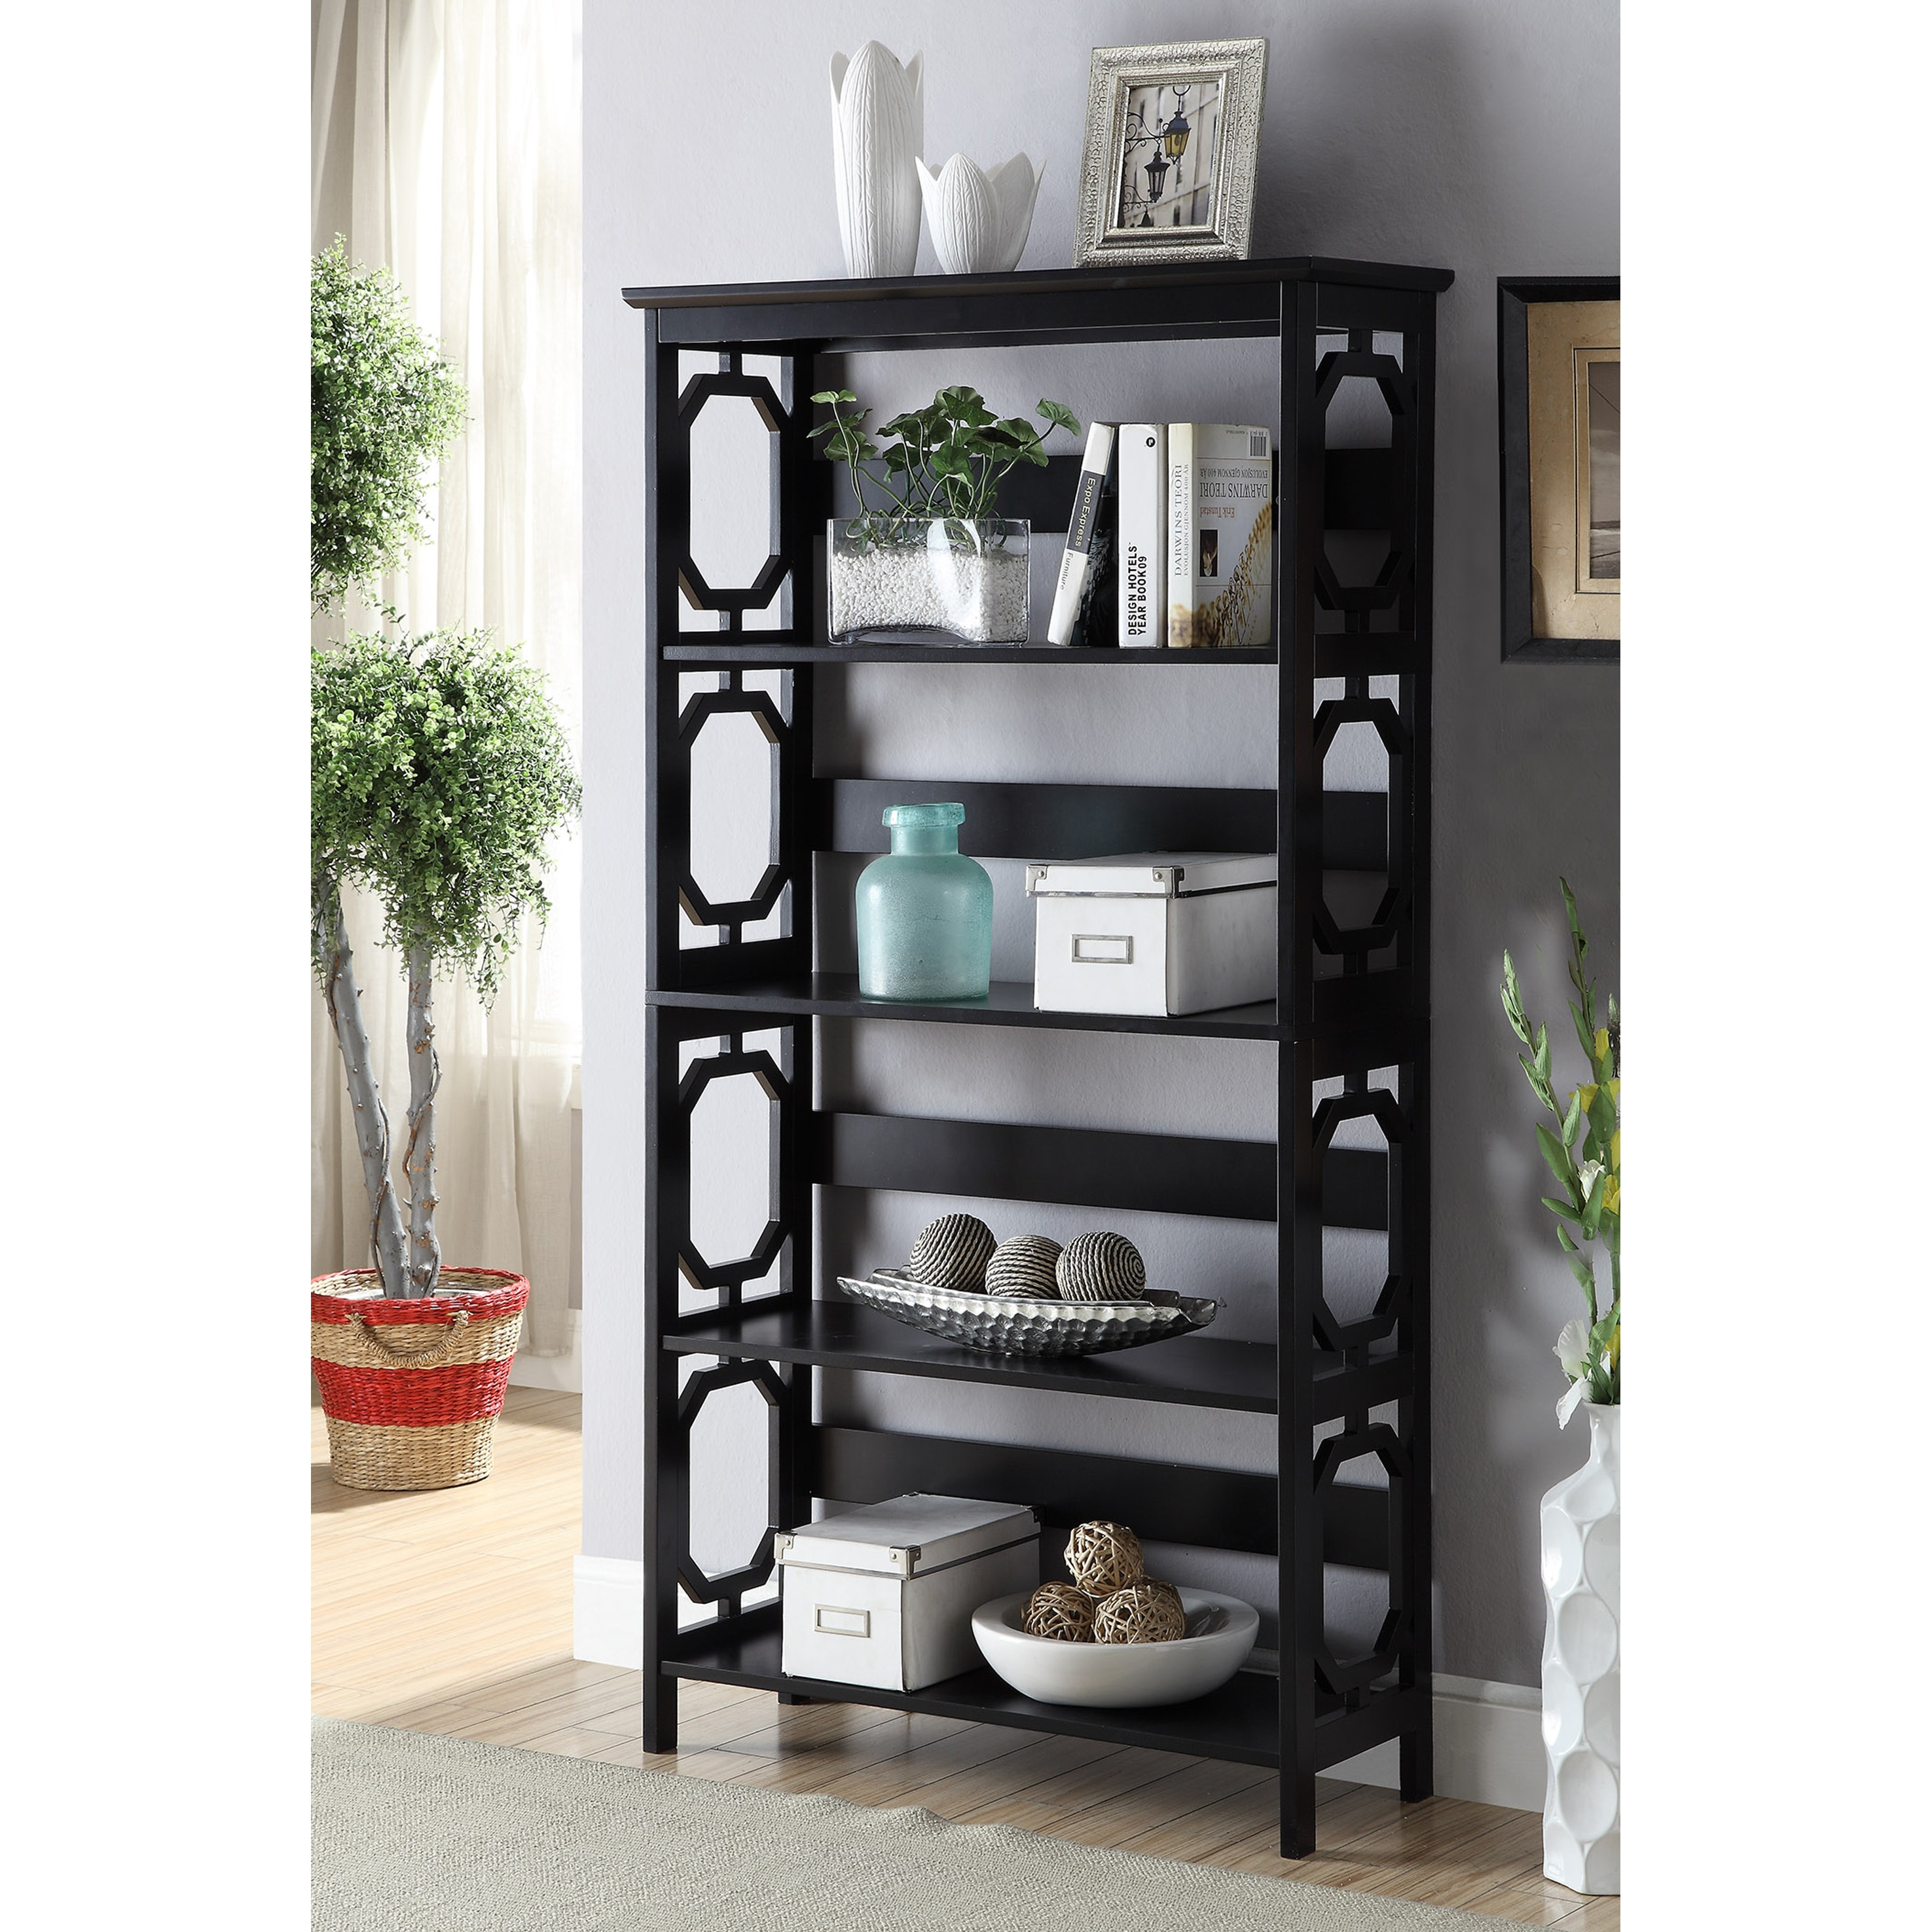 Porch & Den Bywater Lesseps 5 Tier Bookcase  Free Shipping